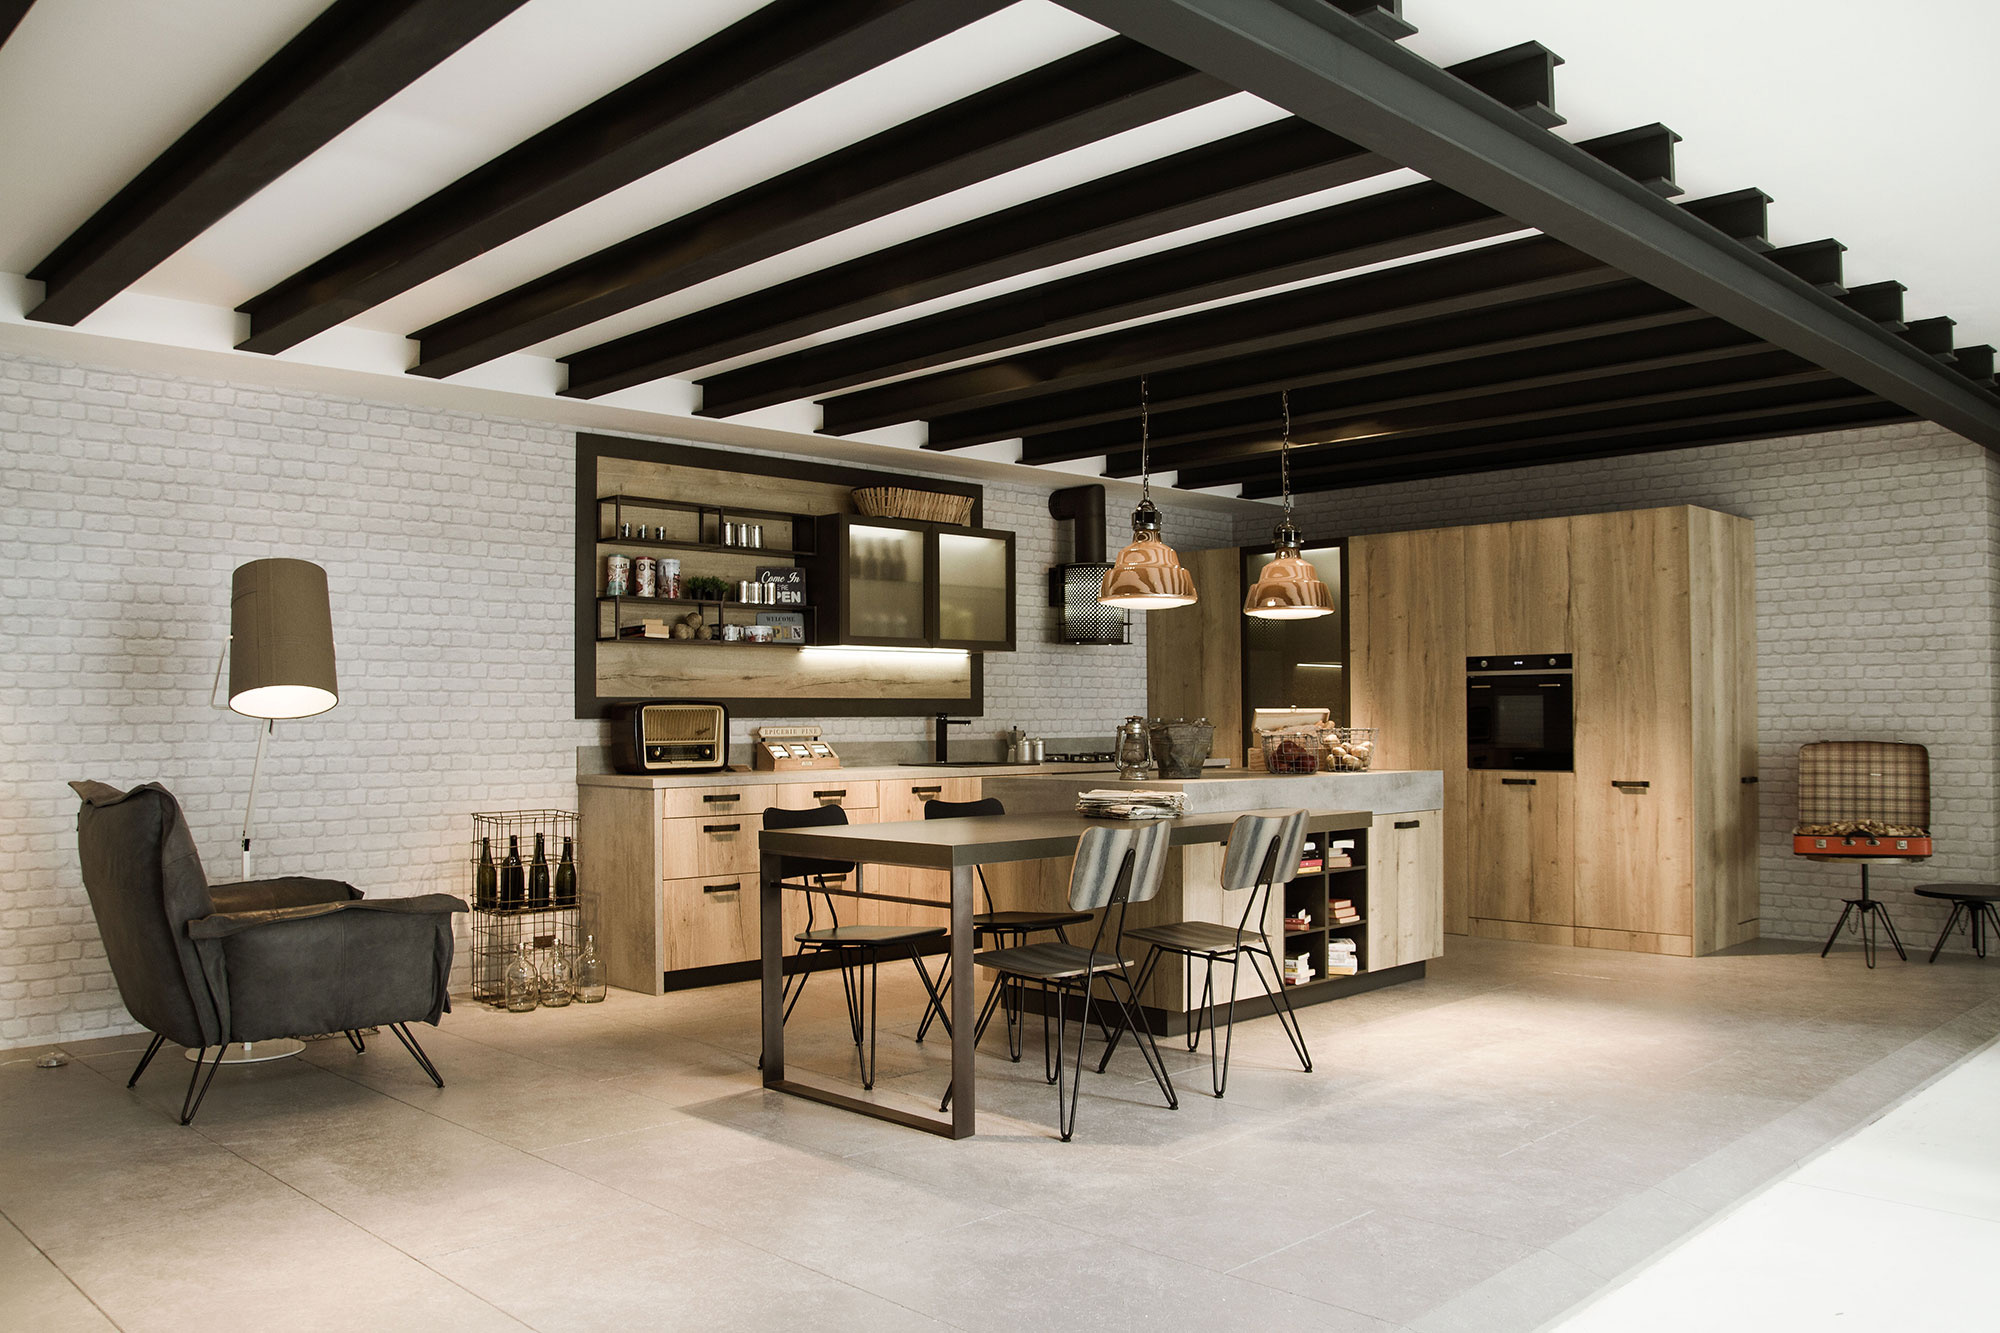 8-kitchen-design-lofts-3-urban-ideas-snaidero